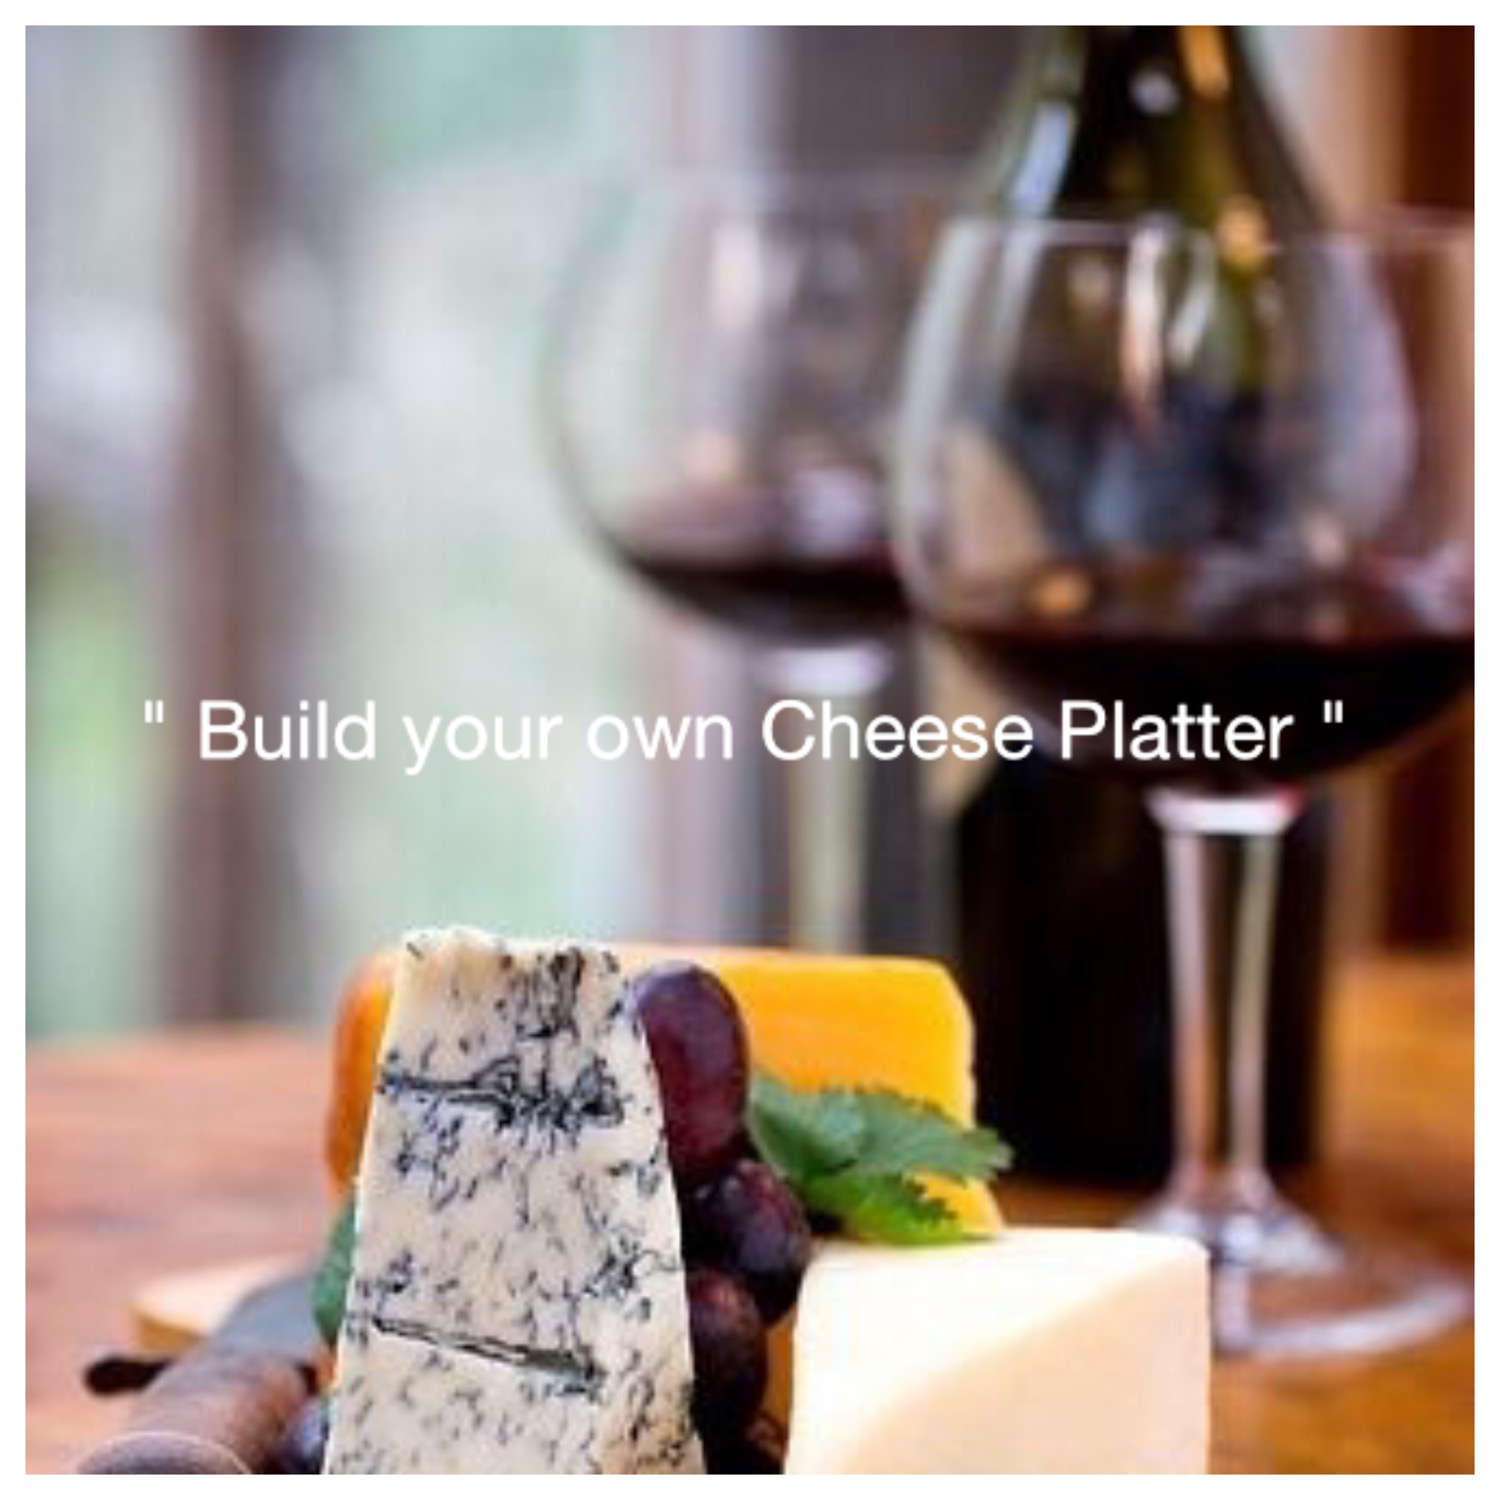 Build your own platter - Sunraysia Cellar Door